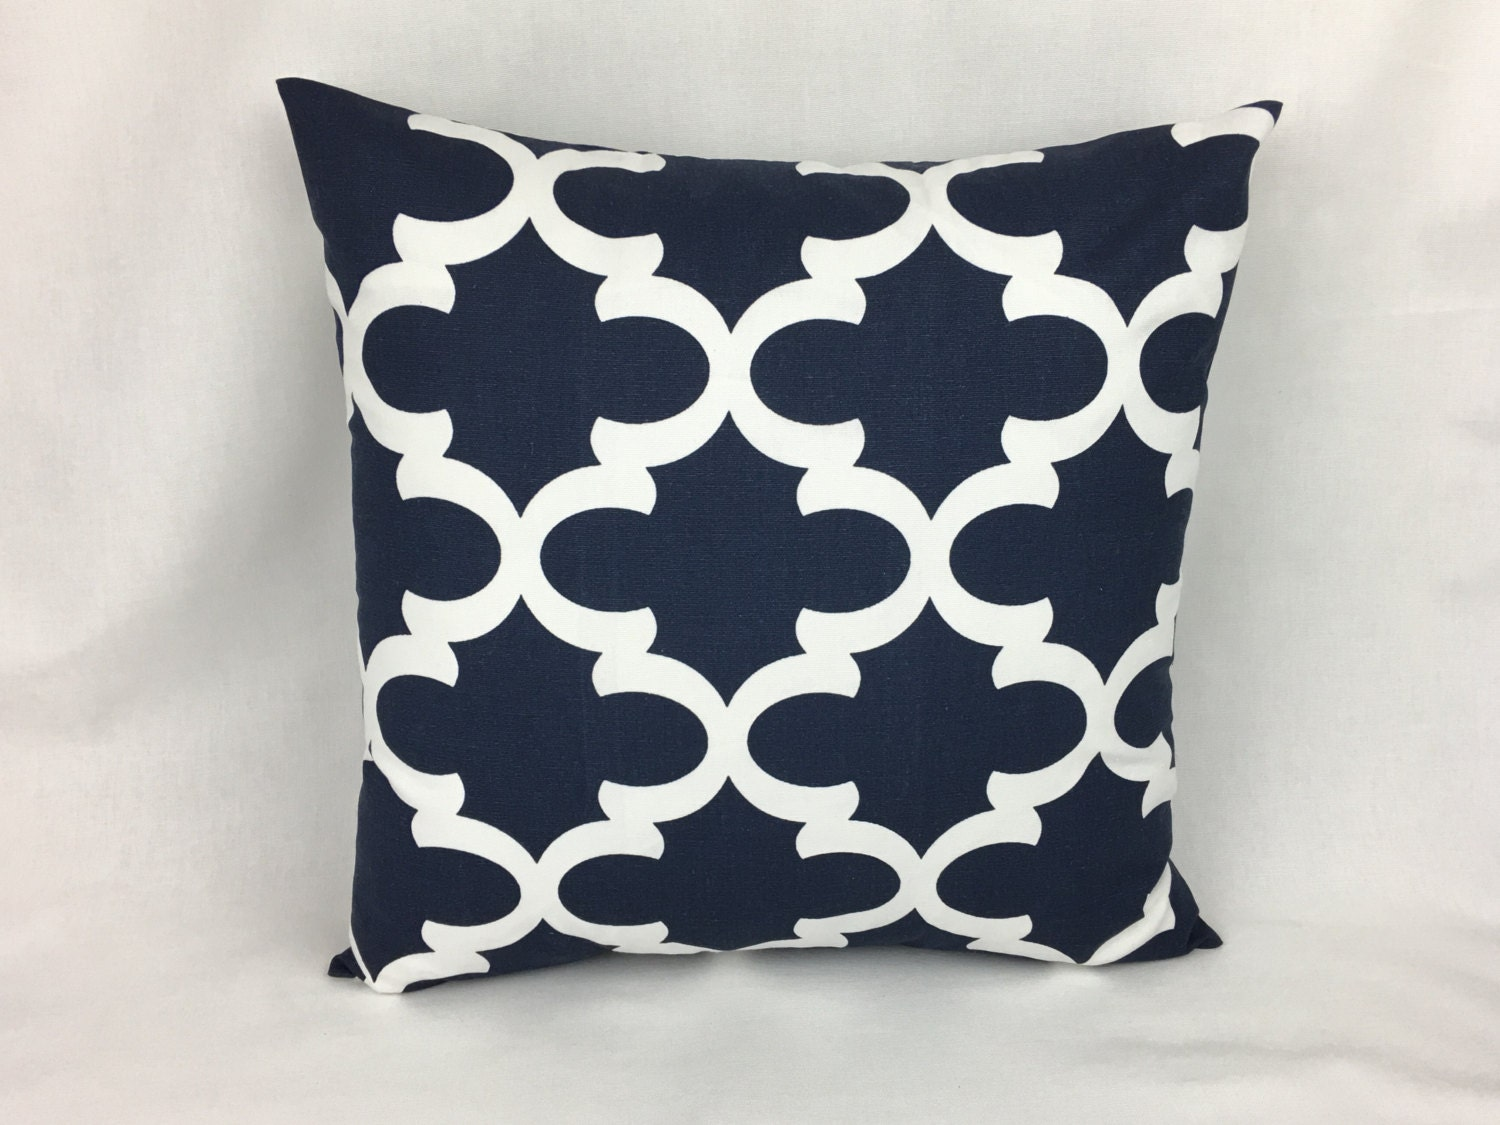 Decorative Pillows For Navy Couch : Throw Pillows Navy Throw Pillows Couch Throw Pillows